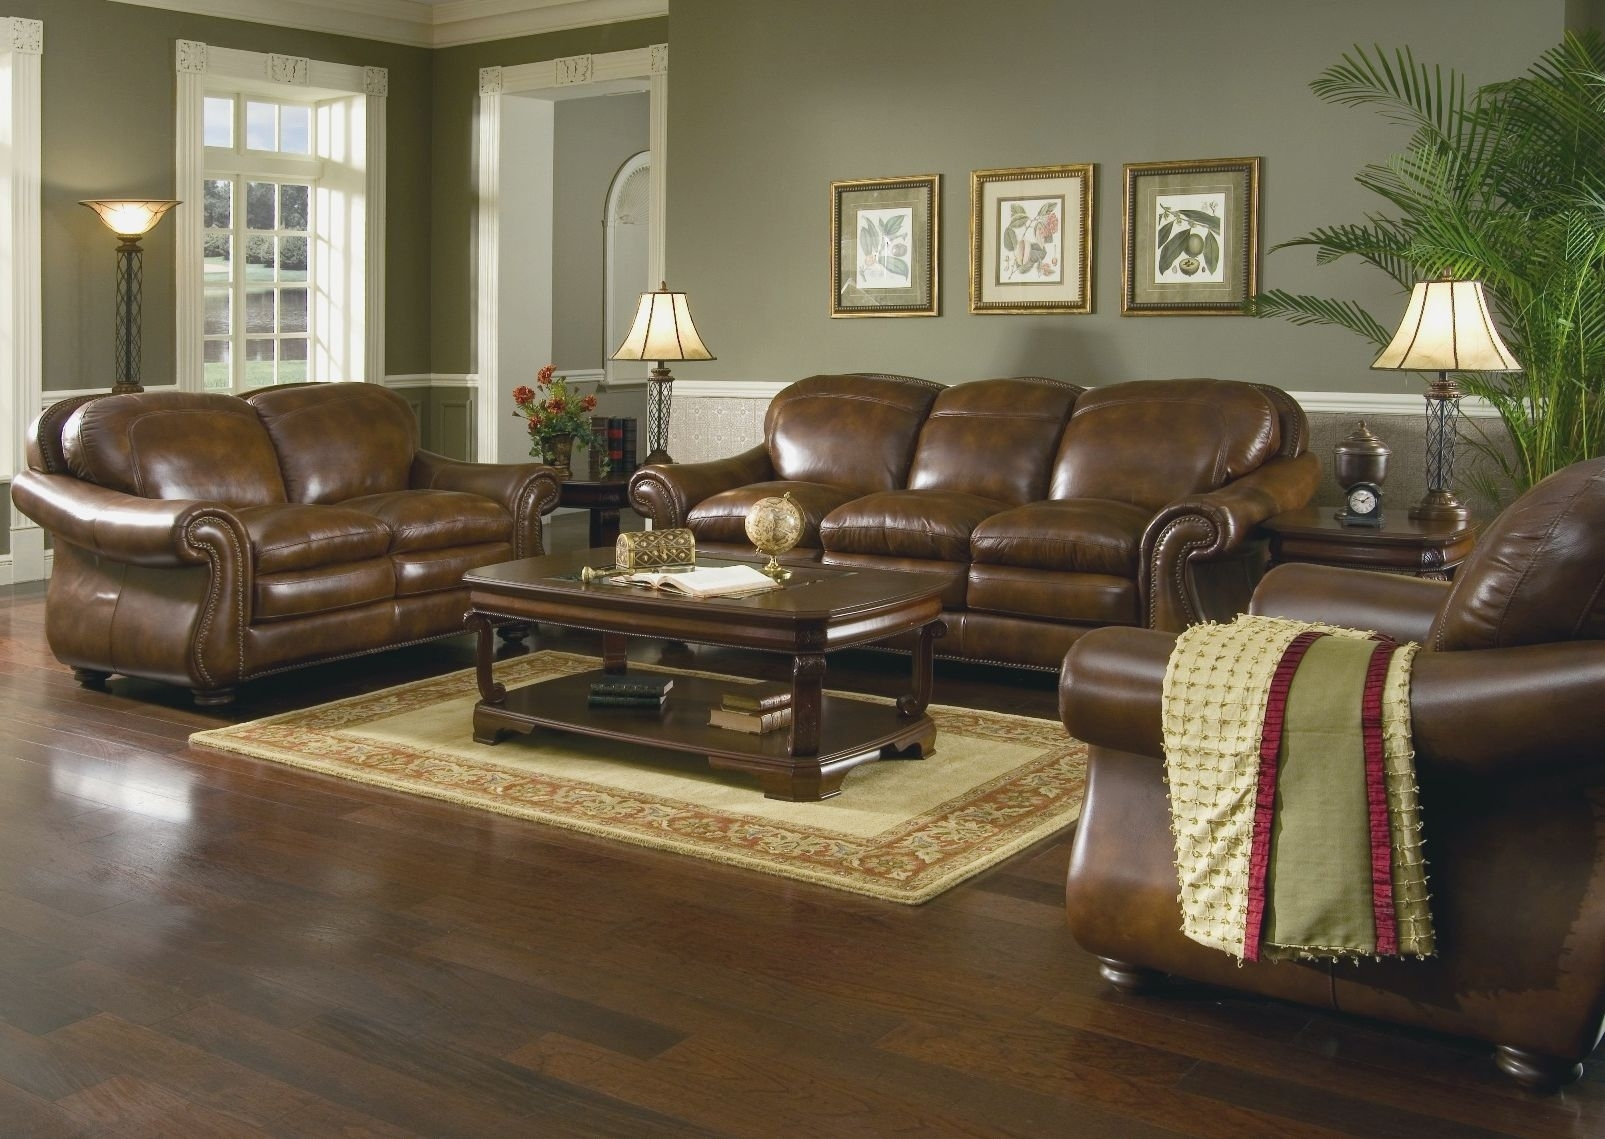 Living Room : Dark Brown Couch Living Room Decor Relaxed Modern Regarding Latest Brown Couch Wall Accents (View 12 of 15)